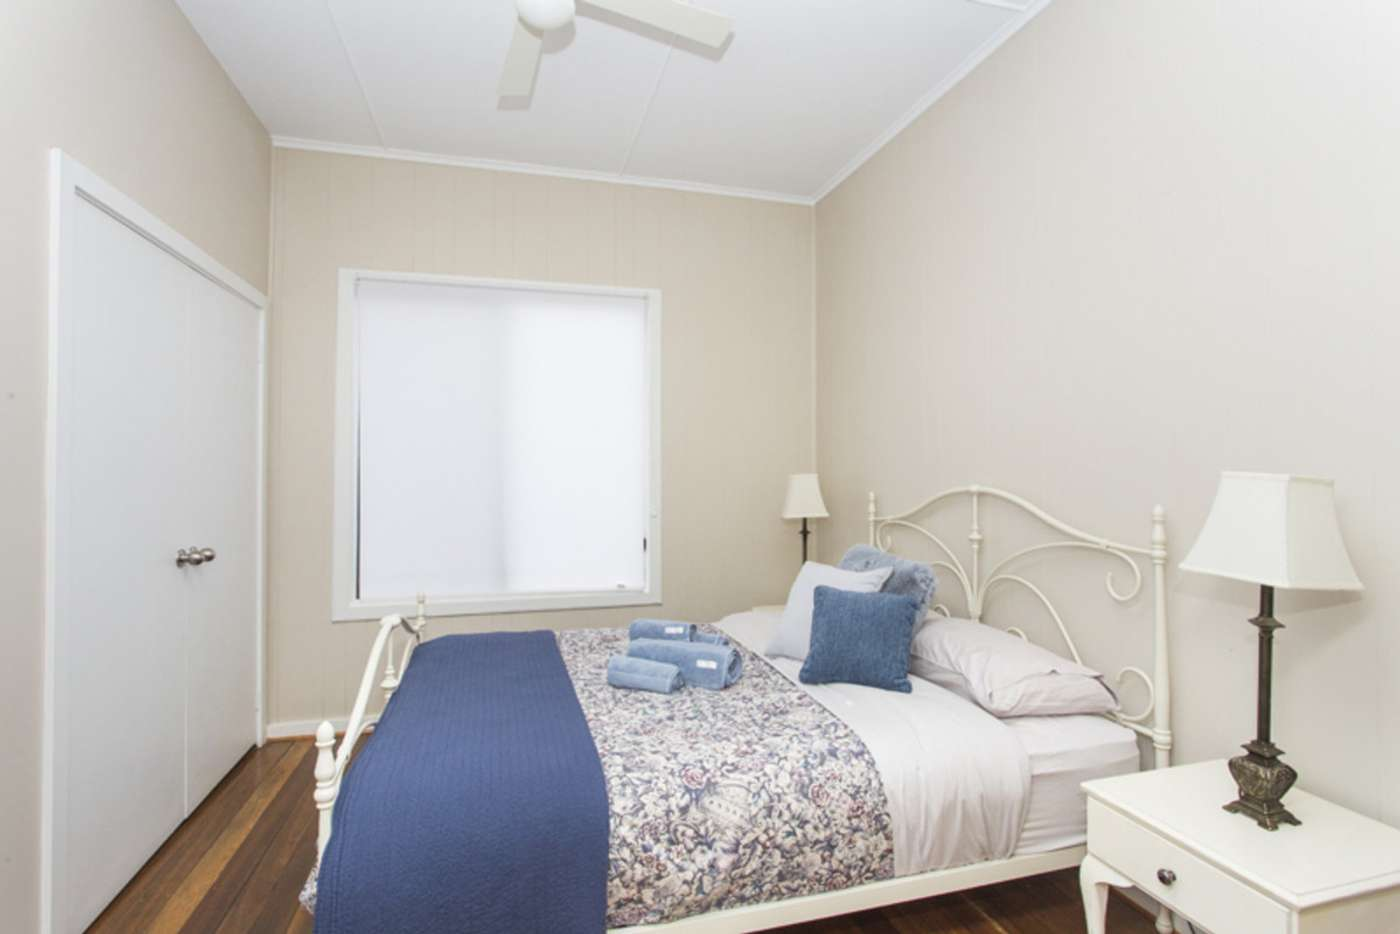 Sixth view of Homely house listing, 22 Jeffries Street, Cessnock NSW 2325